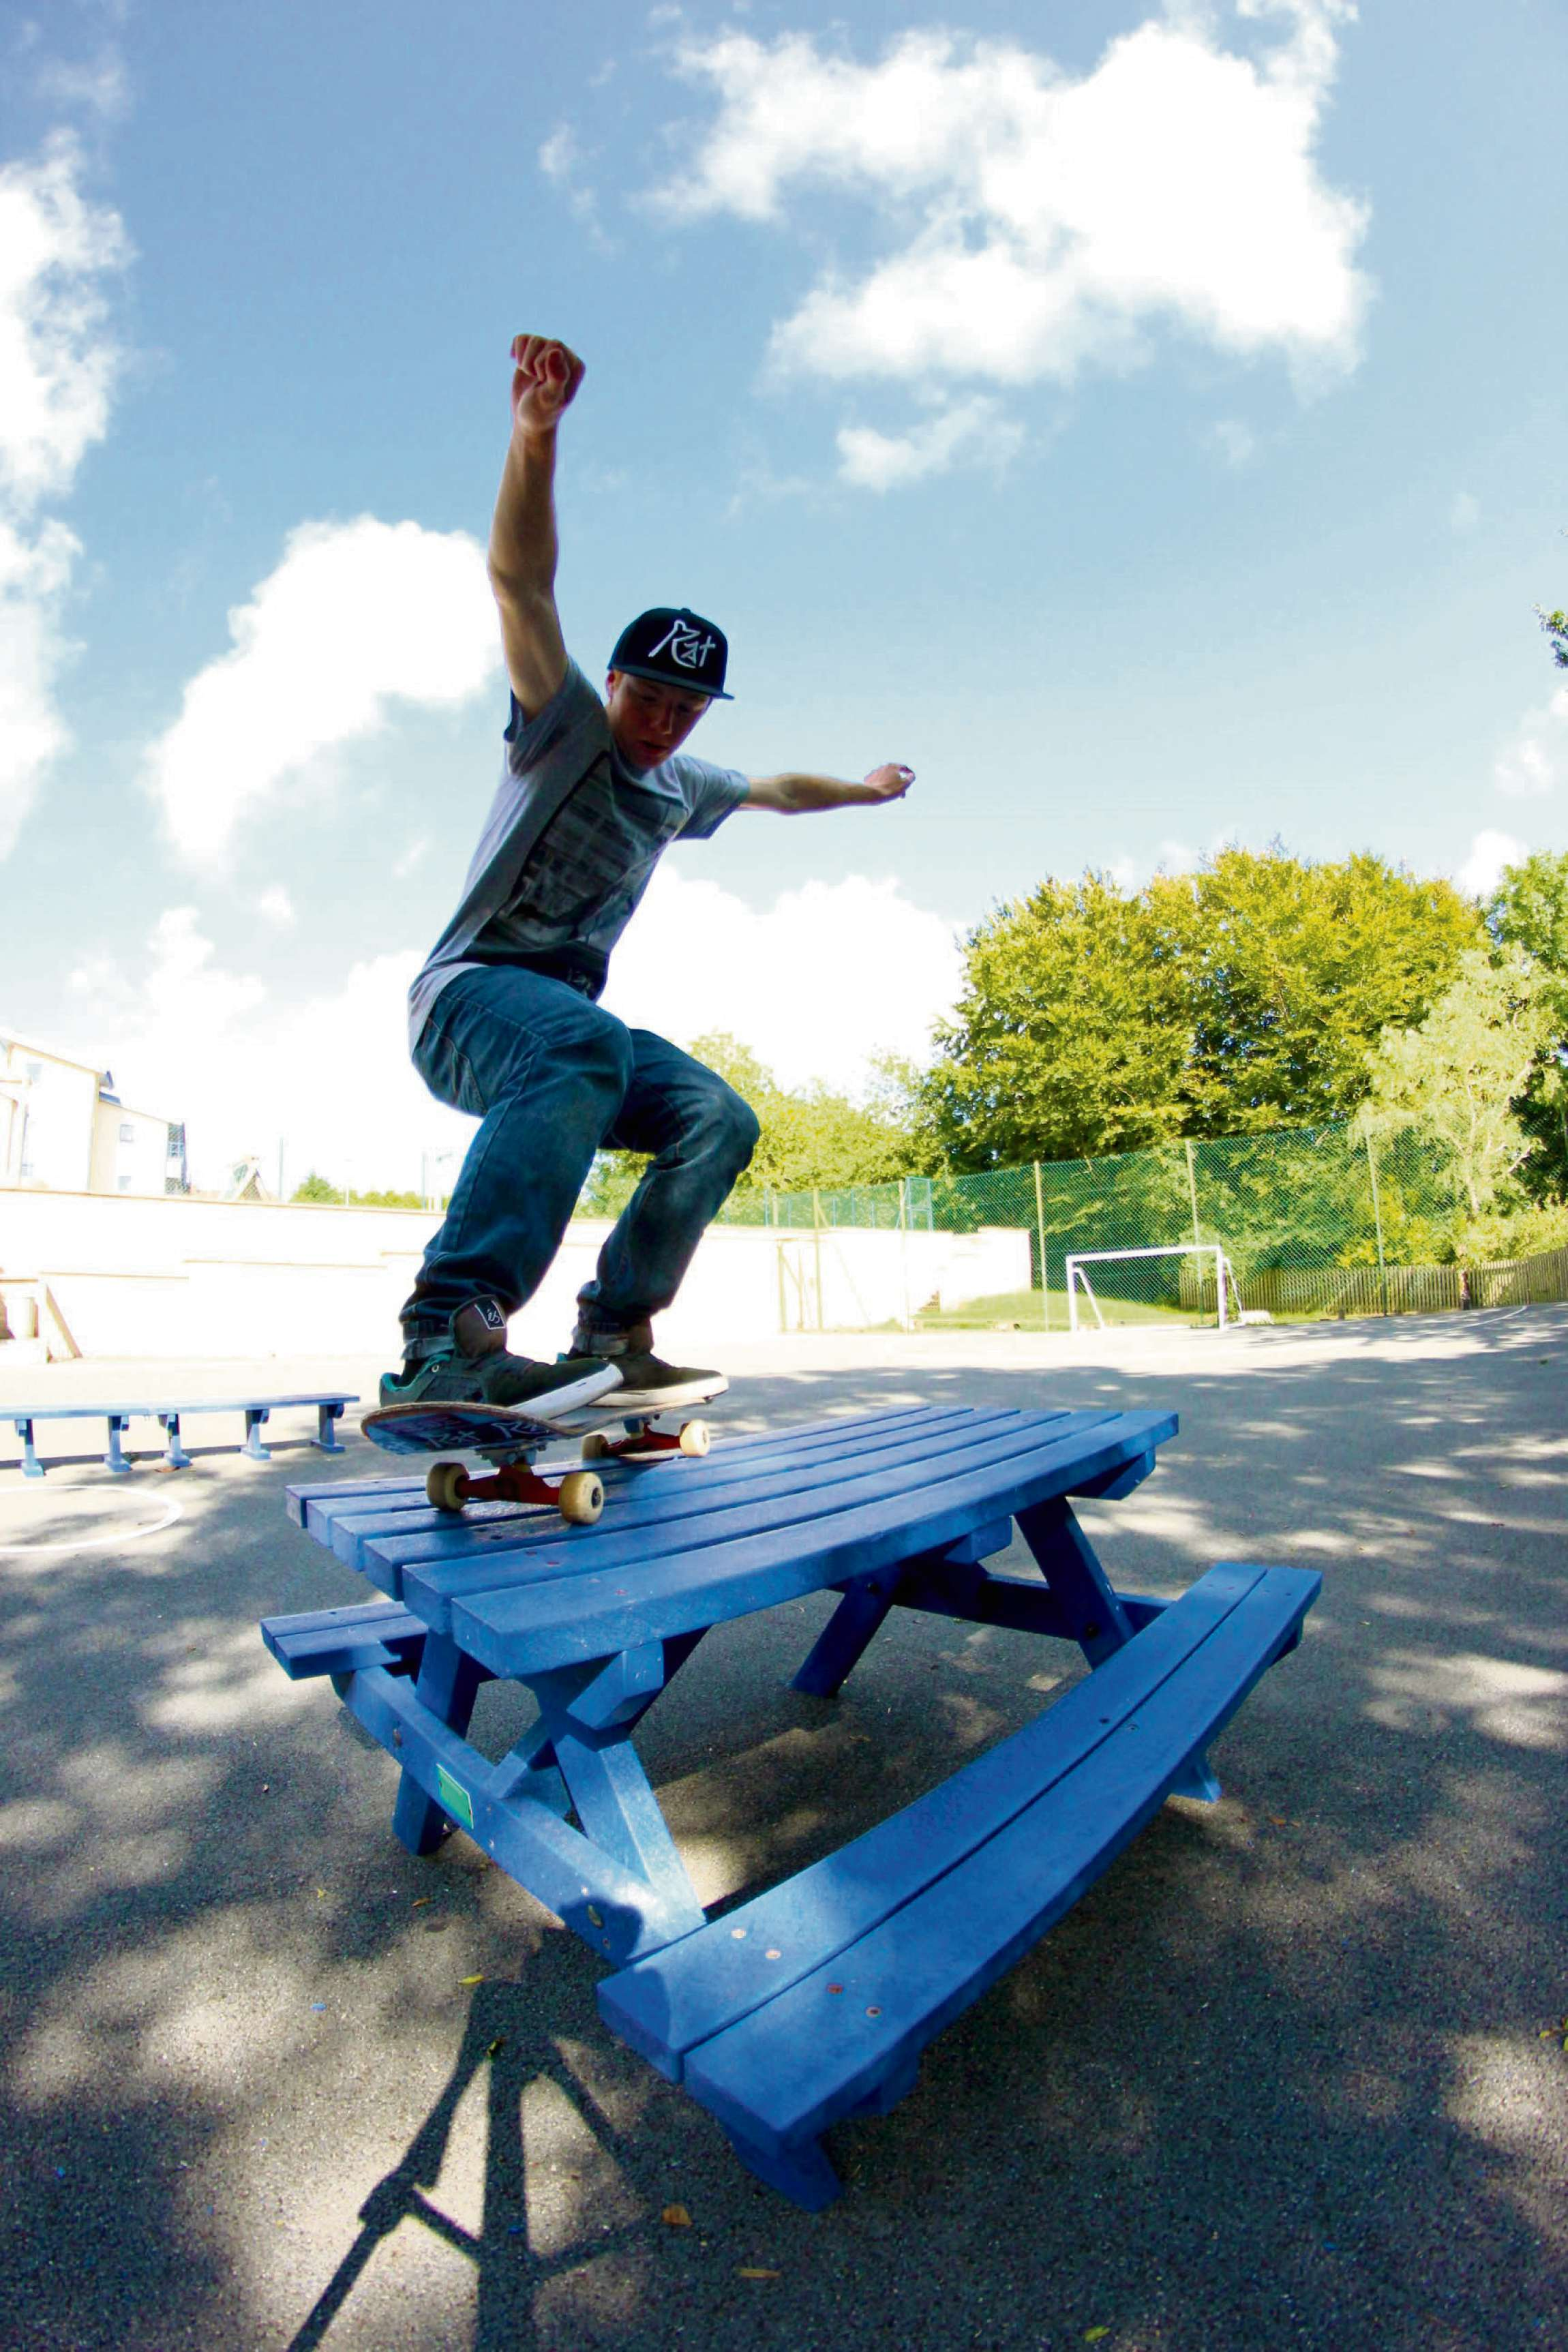 Youngsters choose new skate park design